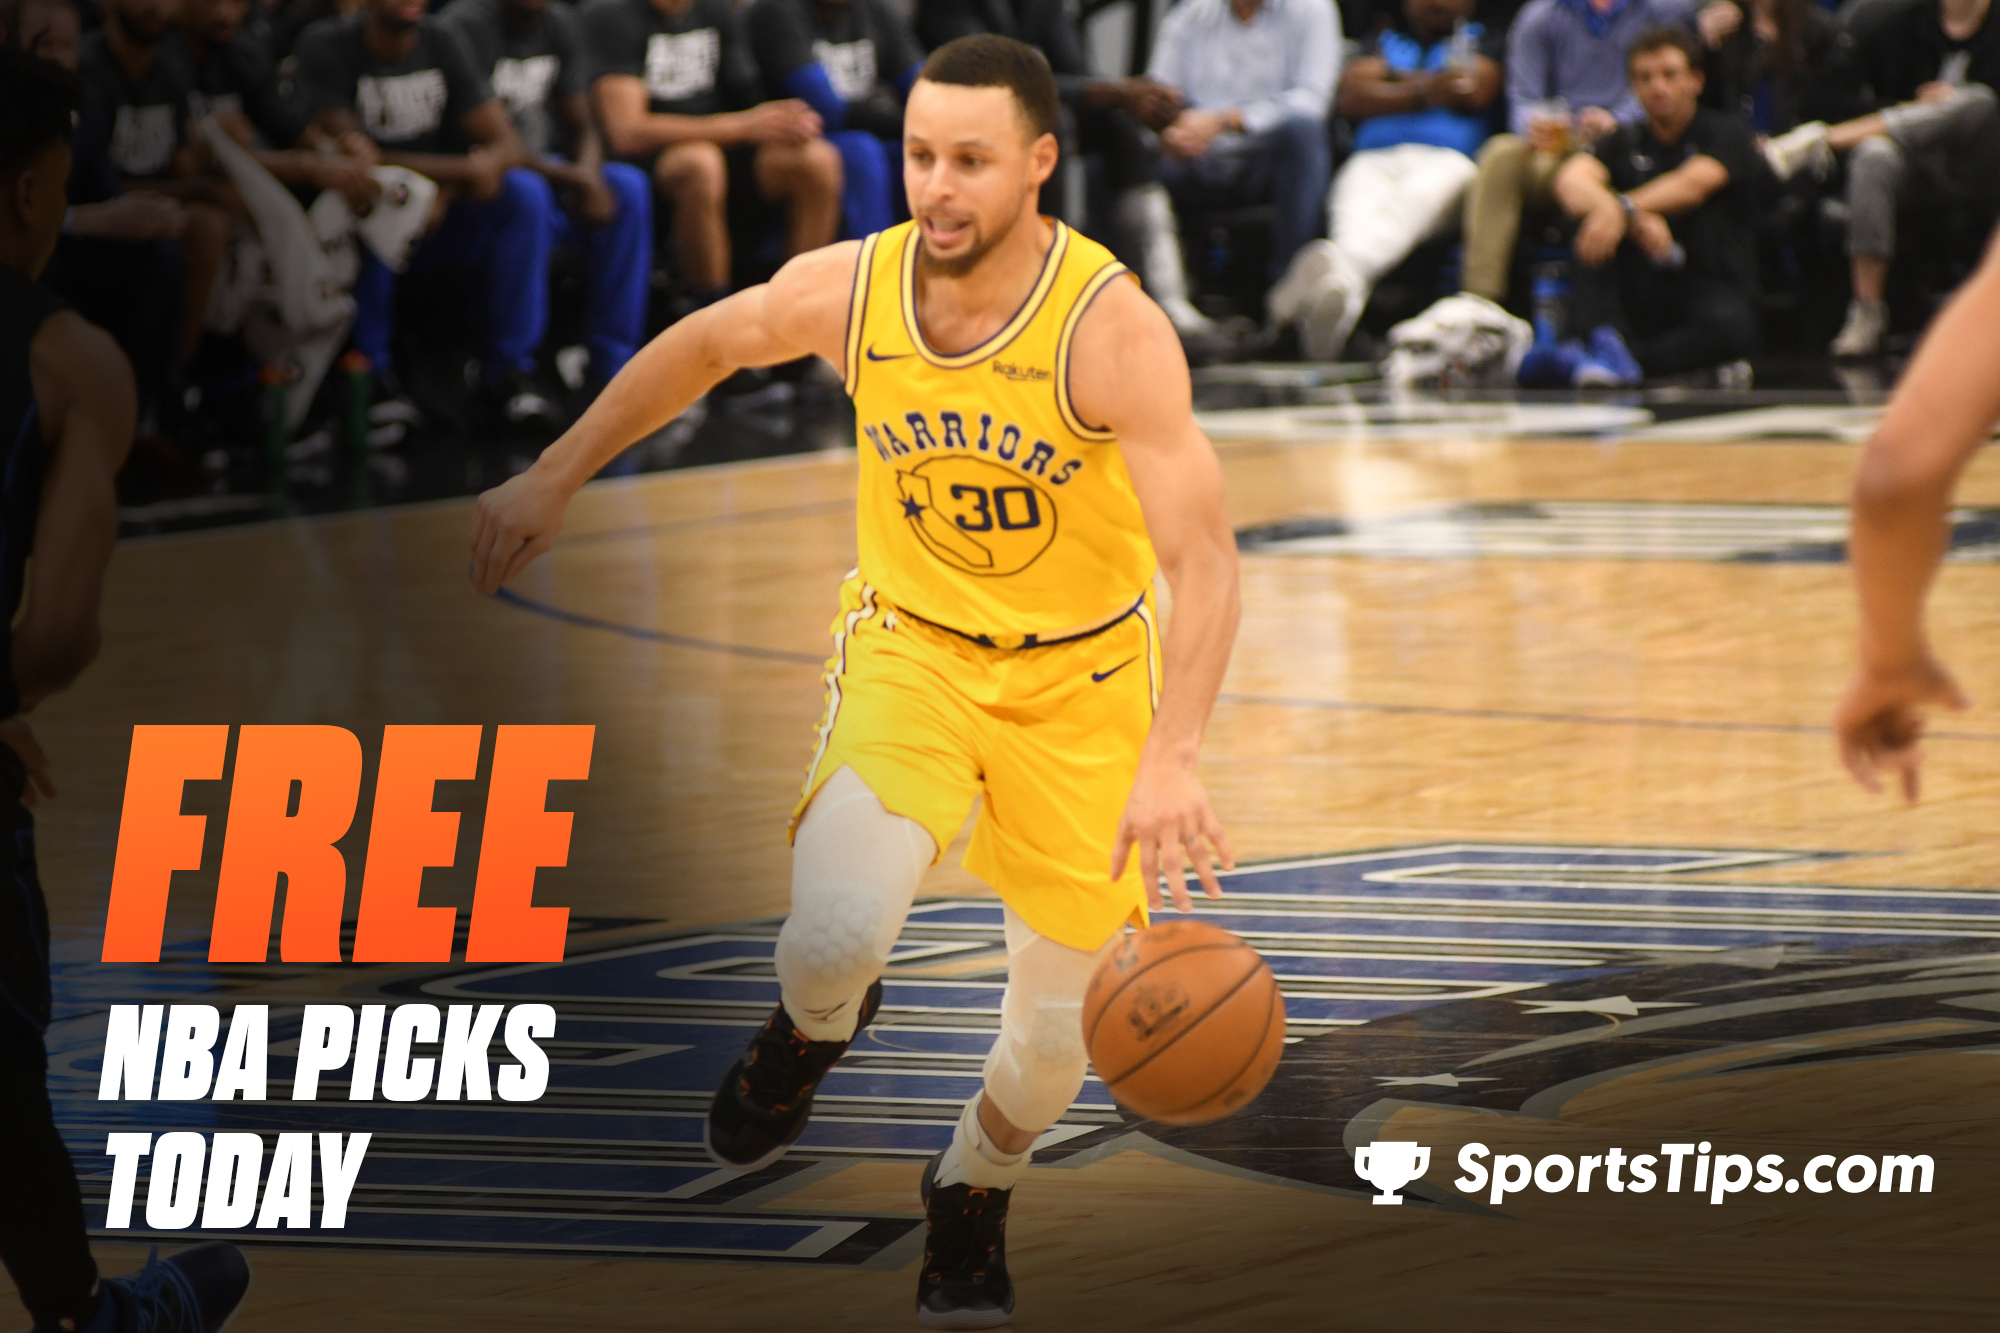 Free NBA Picks Today for Thursday, February 4th, 2021